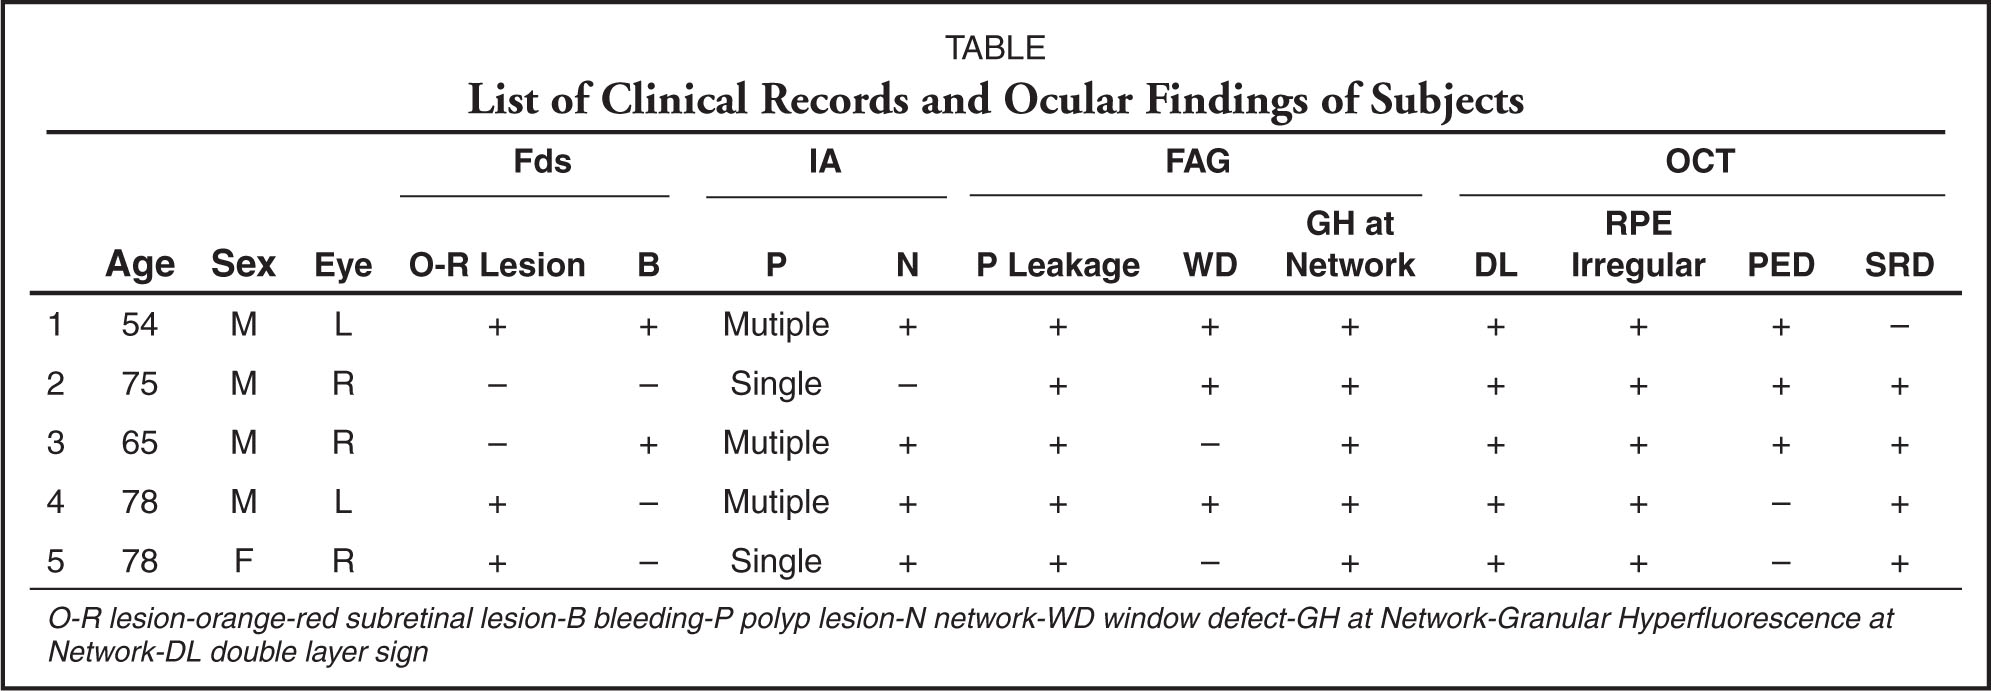 List of Clinical Records and Ocular Findings of Subjects